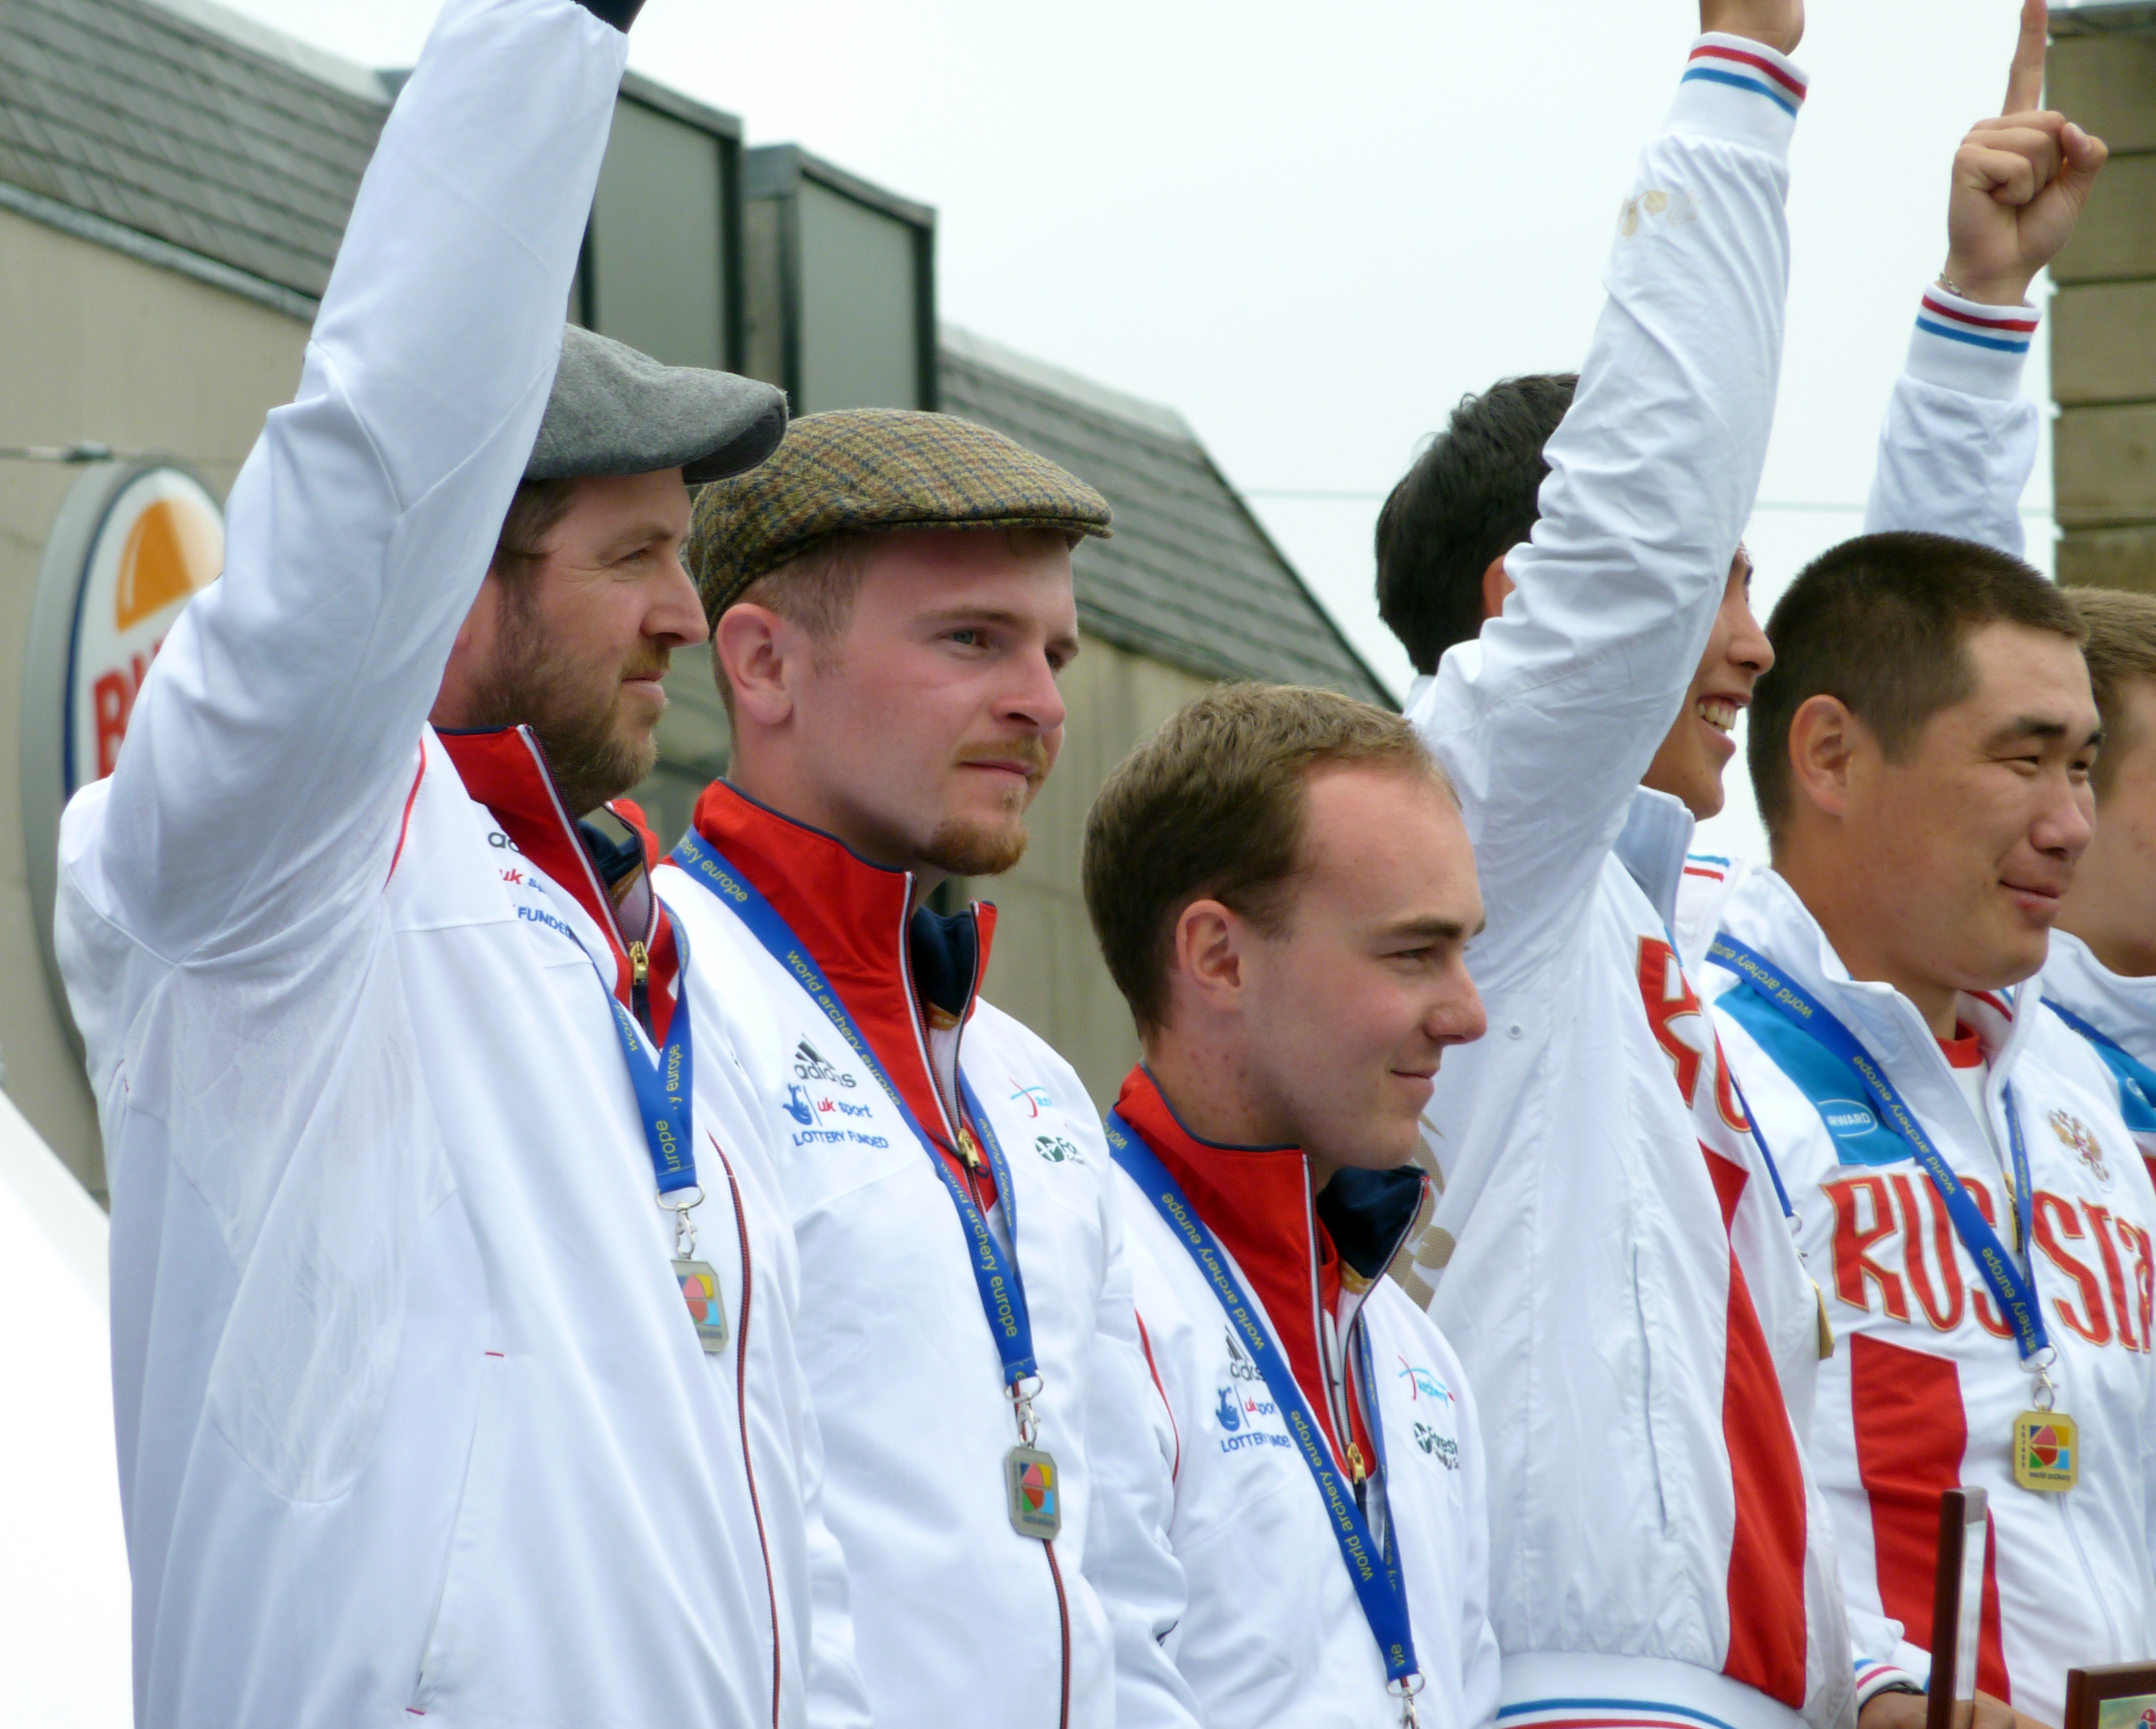 Team GB on the podium